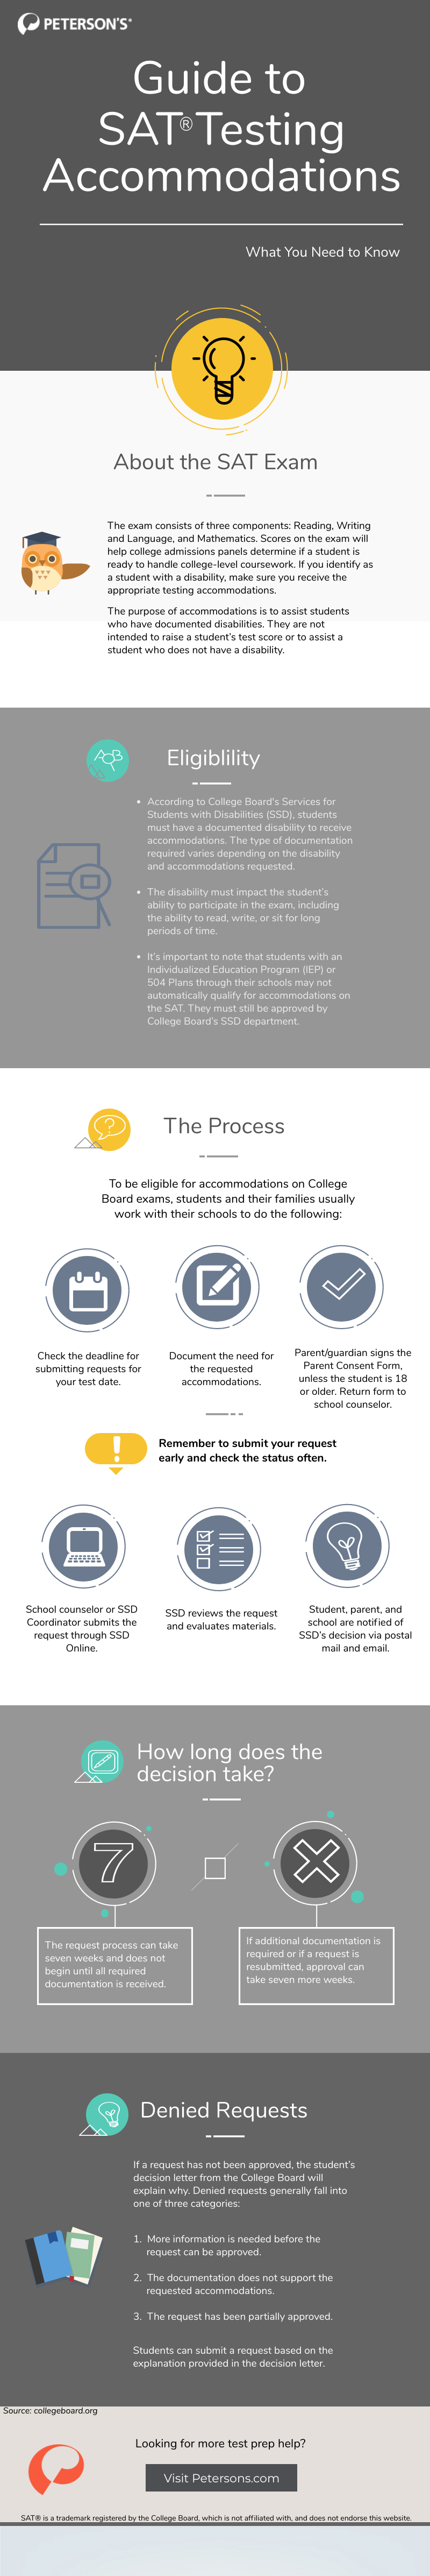 Infographic explaining SAT Testing accommodations